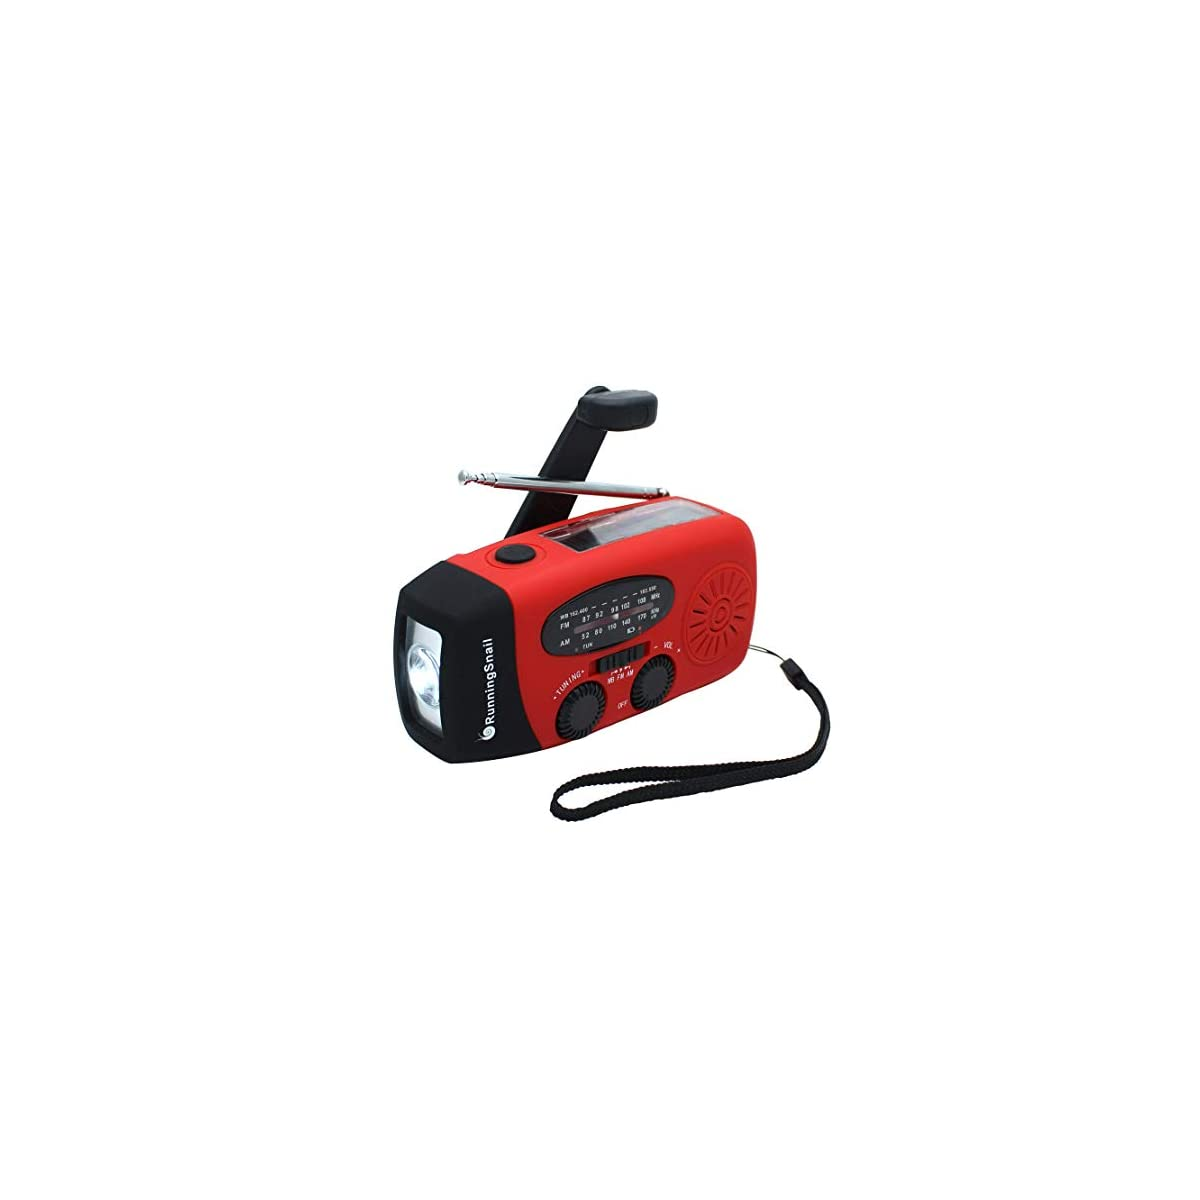 SaleProductsOffer - No.1 Best Online Store 41UzlNS6n0L [Upgraded Version] RunningSnail Emergency Hand Crank Self Powered AM/FM NOAA Solar Weather Radio with LED Flashlight, 1000mAh Power Bank for iPhone/Smart Phone